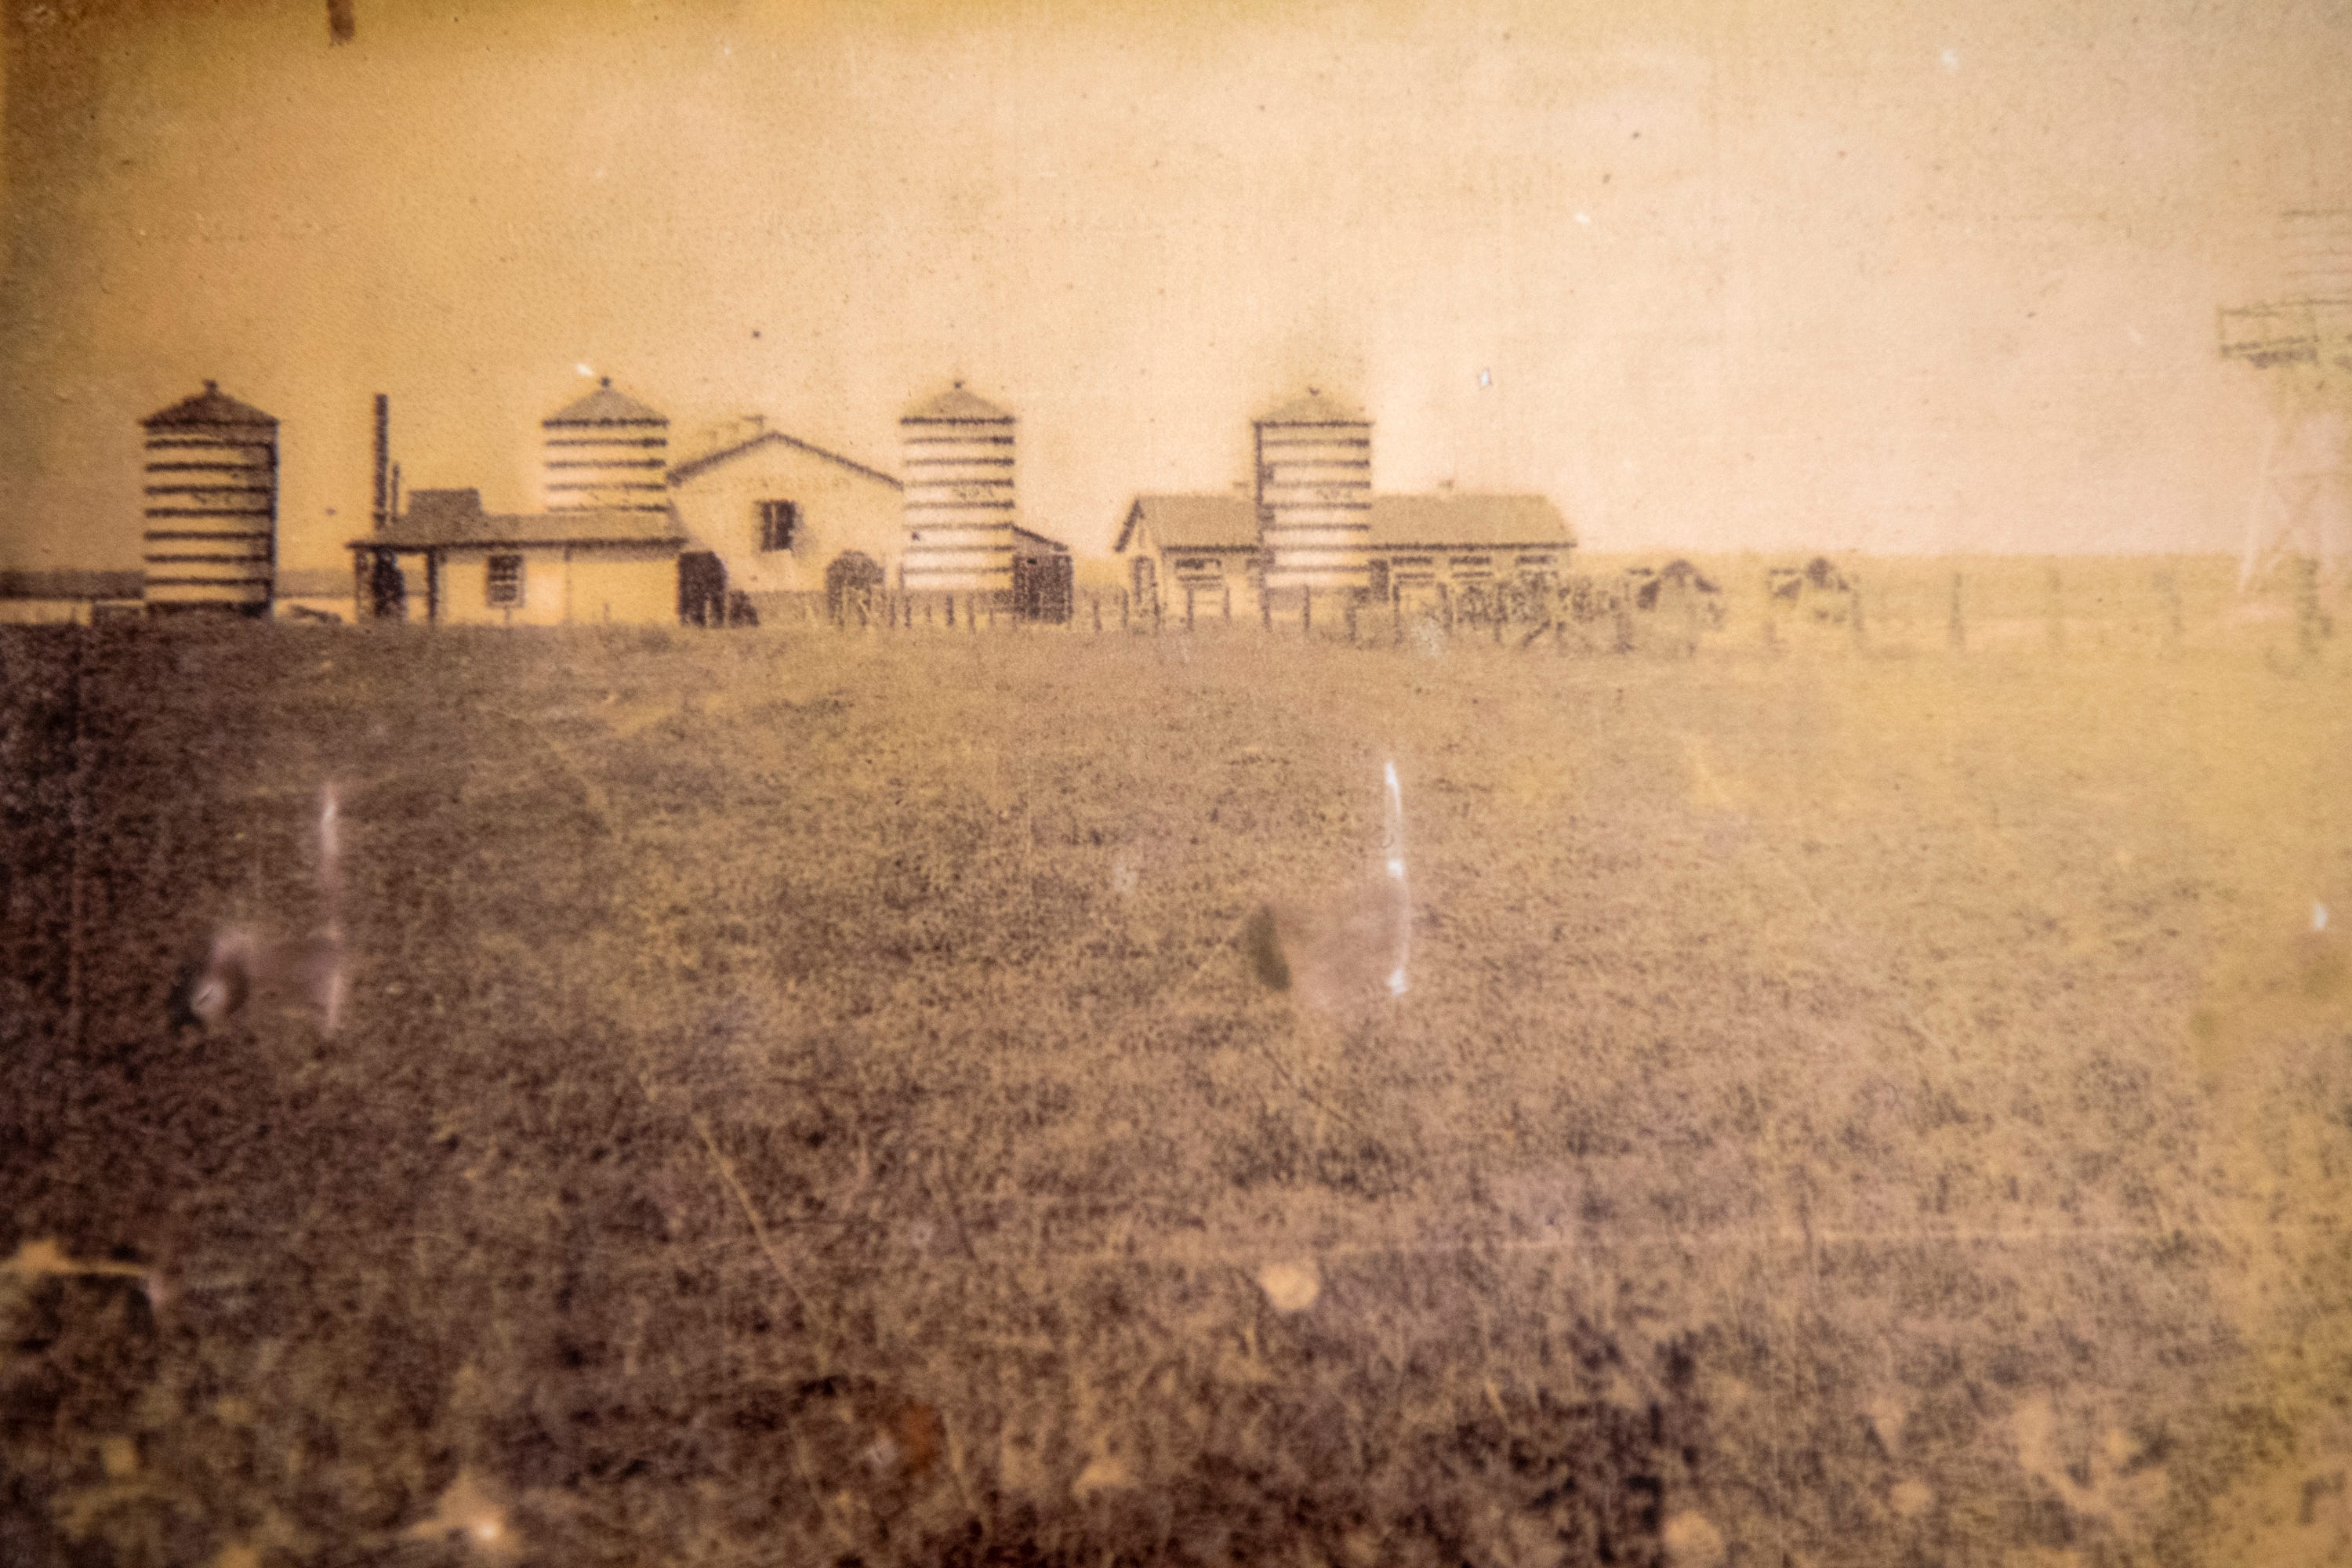 A historical photo shows the Godchaux's Belle Point Dairy, part of the plantation which became Reserve.